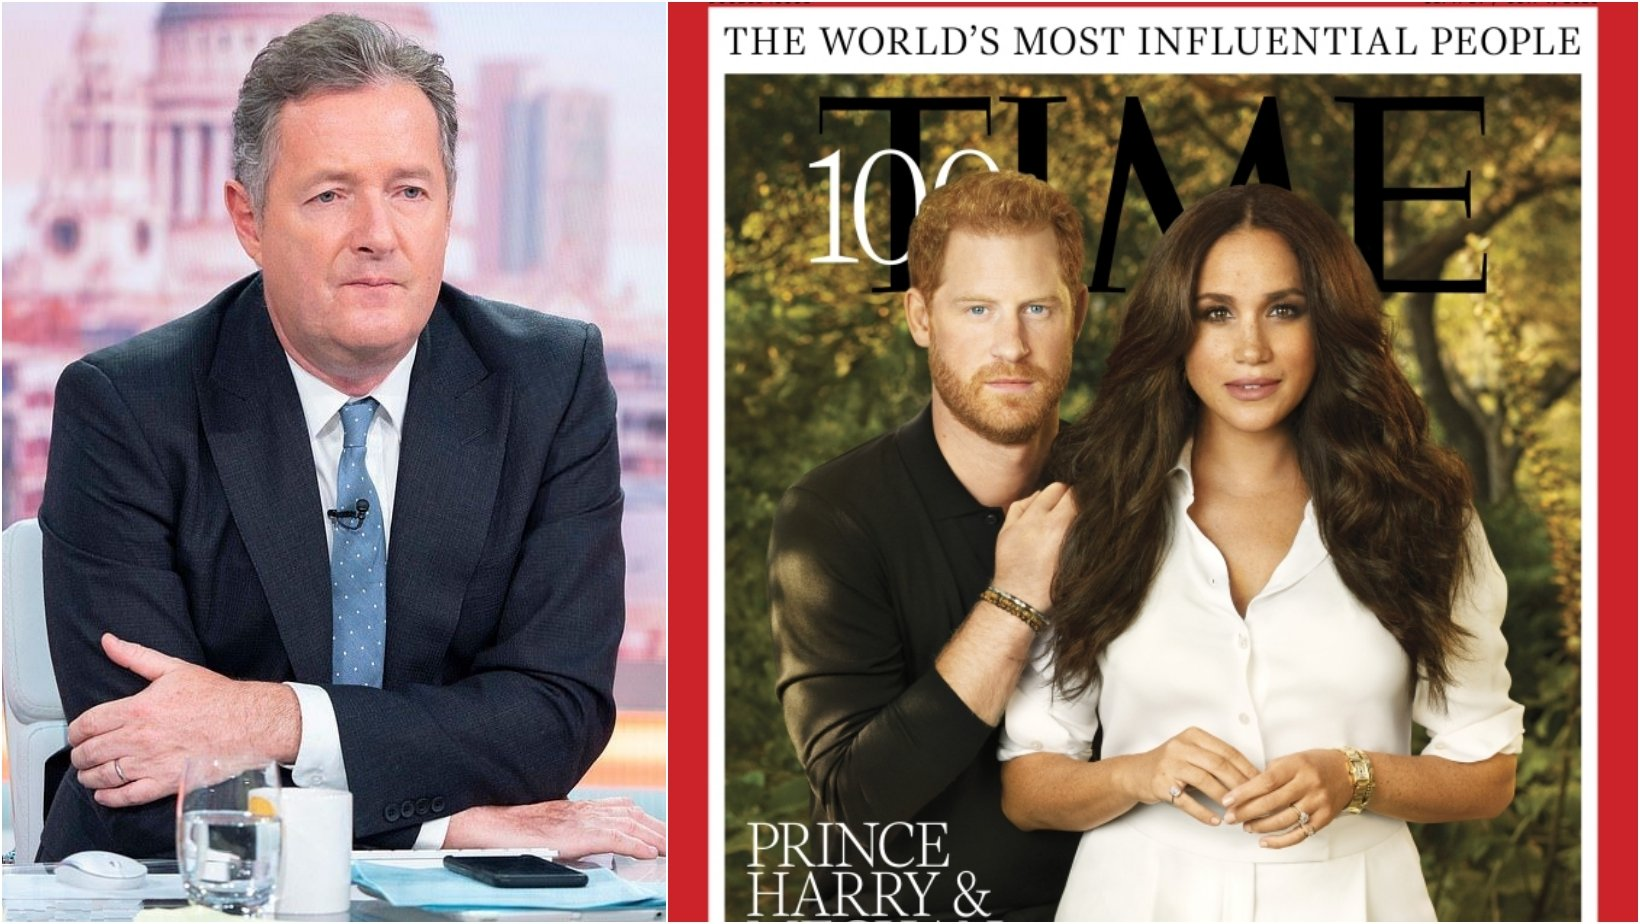 6 facebook cover 26.jpg?resize=412,232 - Piers Morgan Trolled Prince Harry And Meghan Markle's Time Magazine's 'Most Influential People' Cover